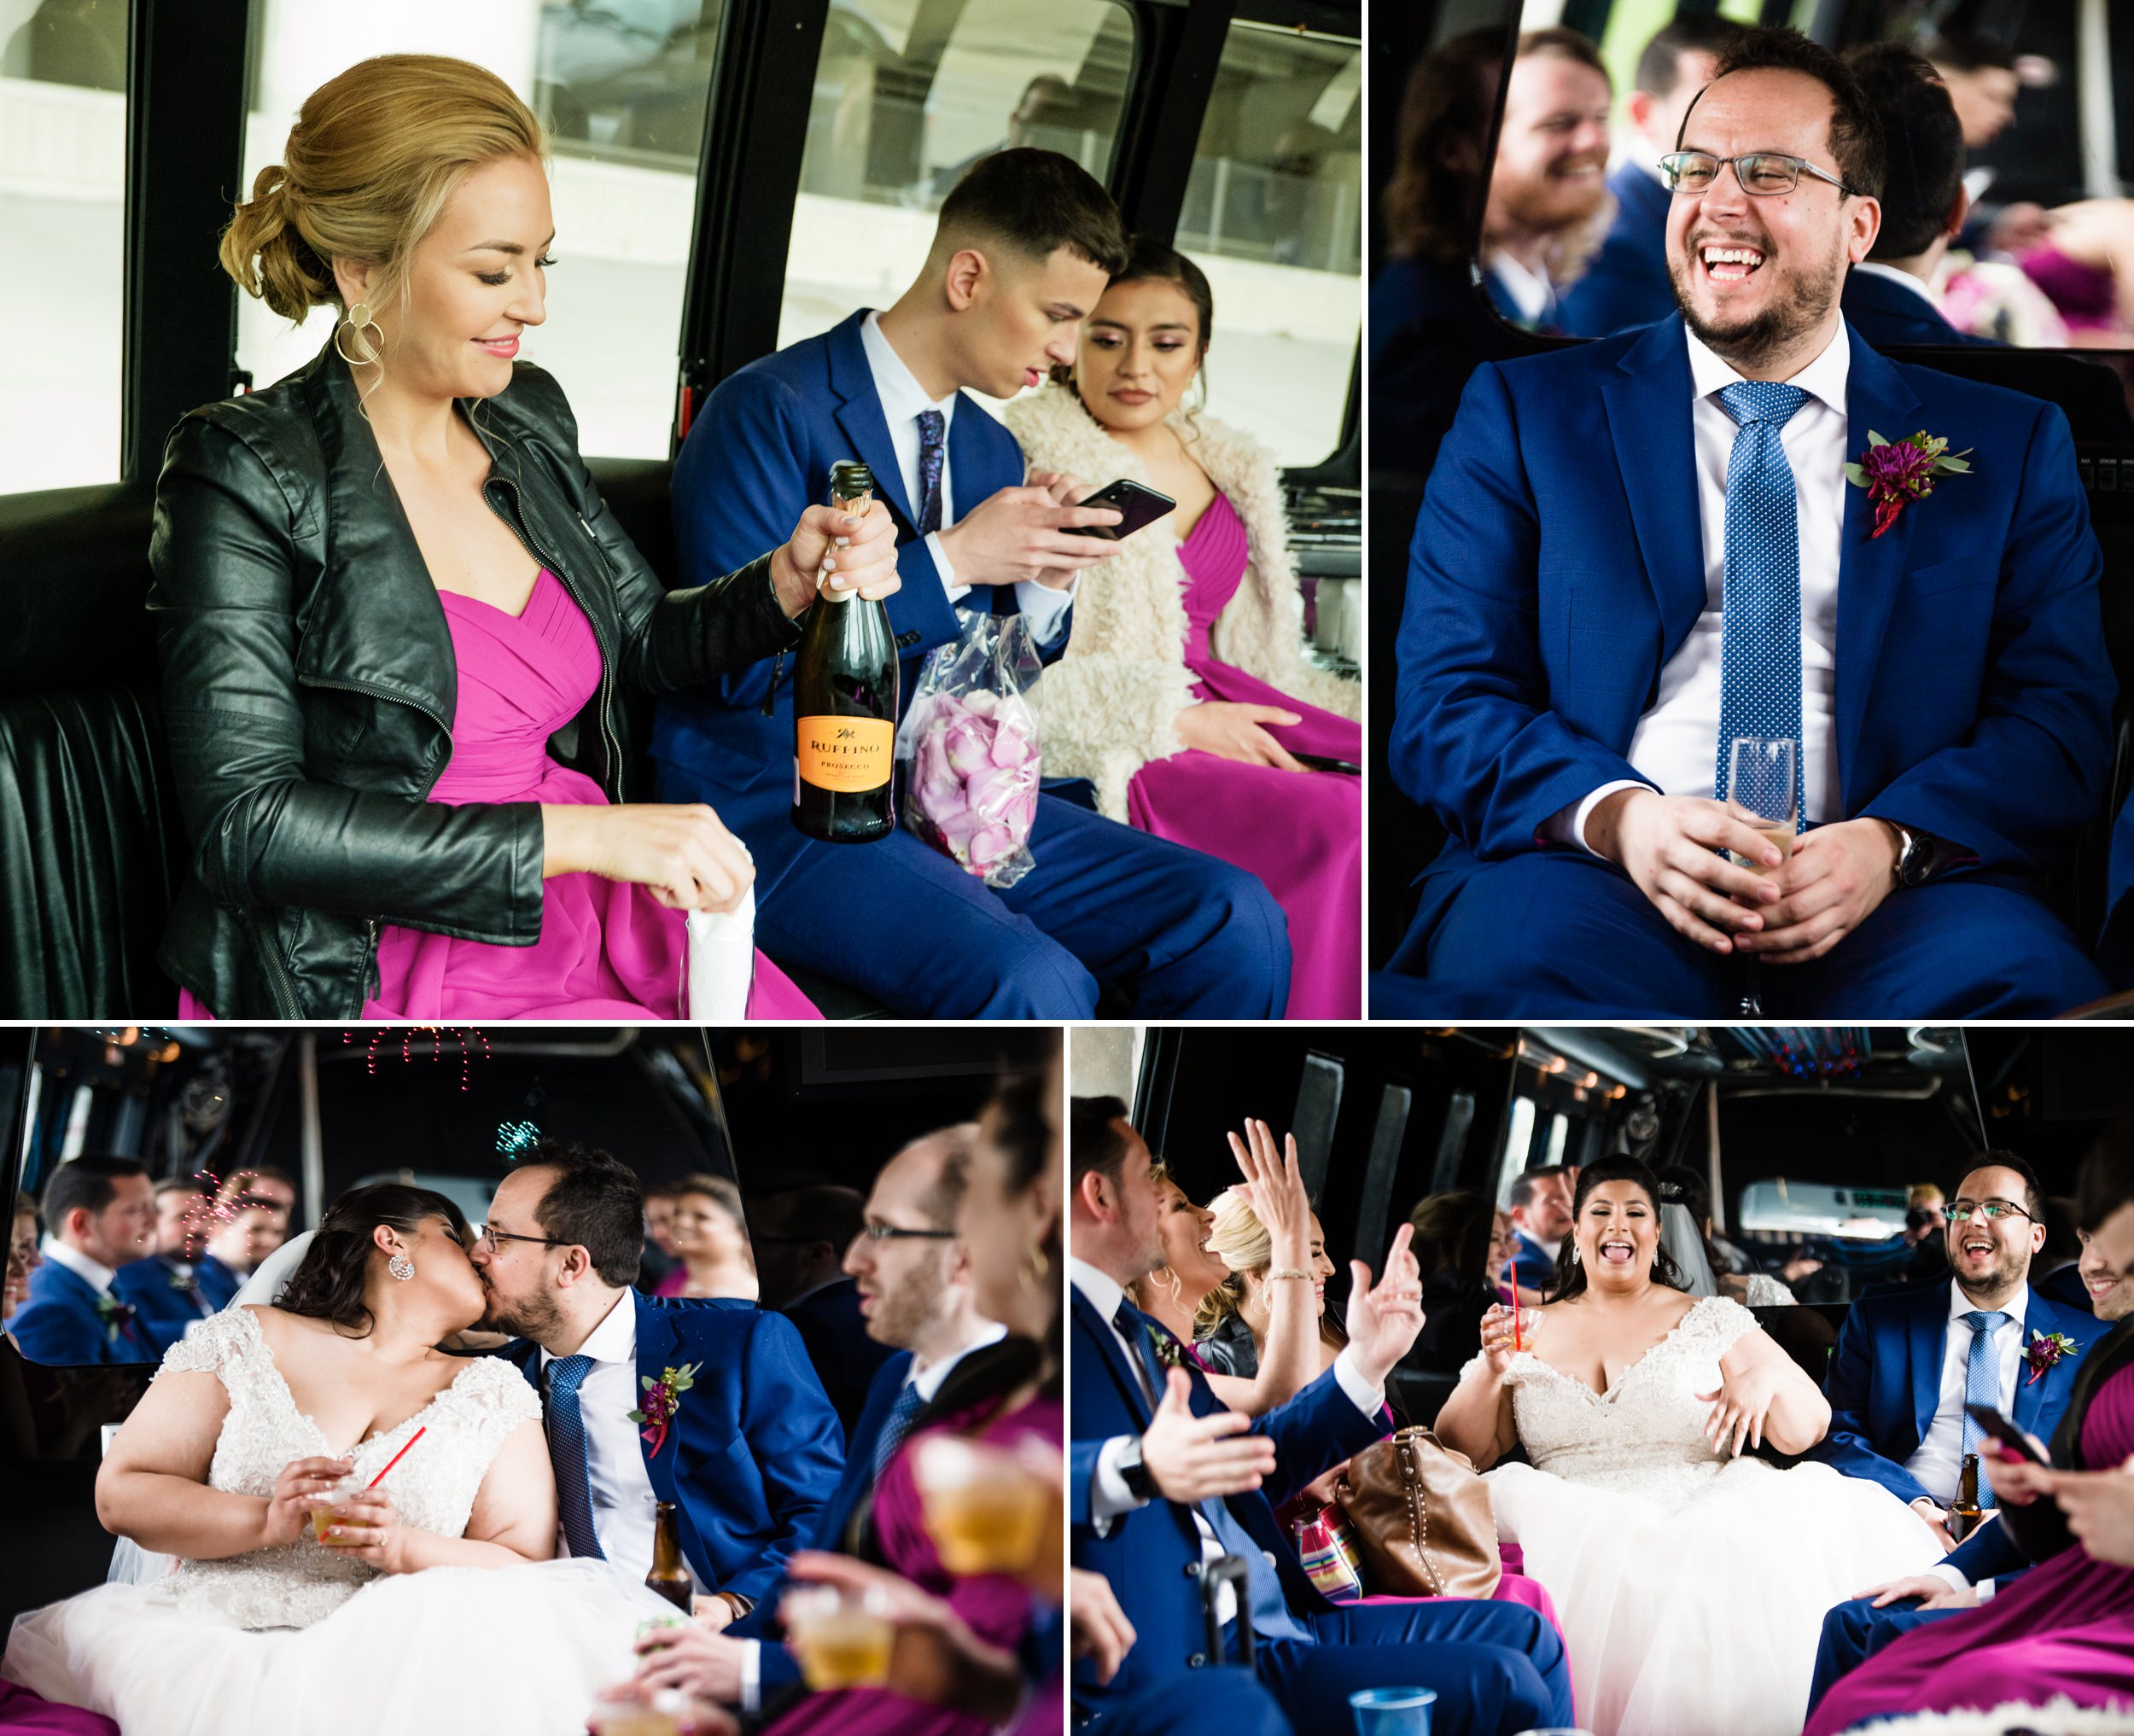 The wedding party celebrates on the party bus.